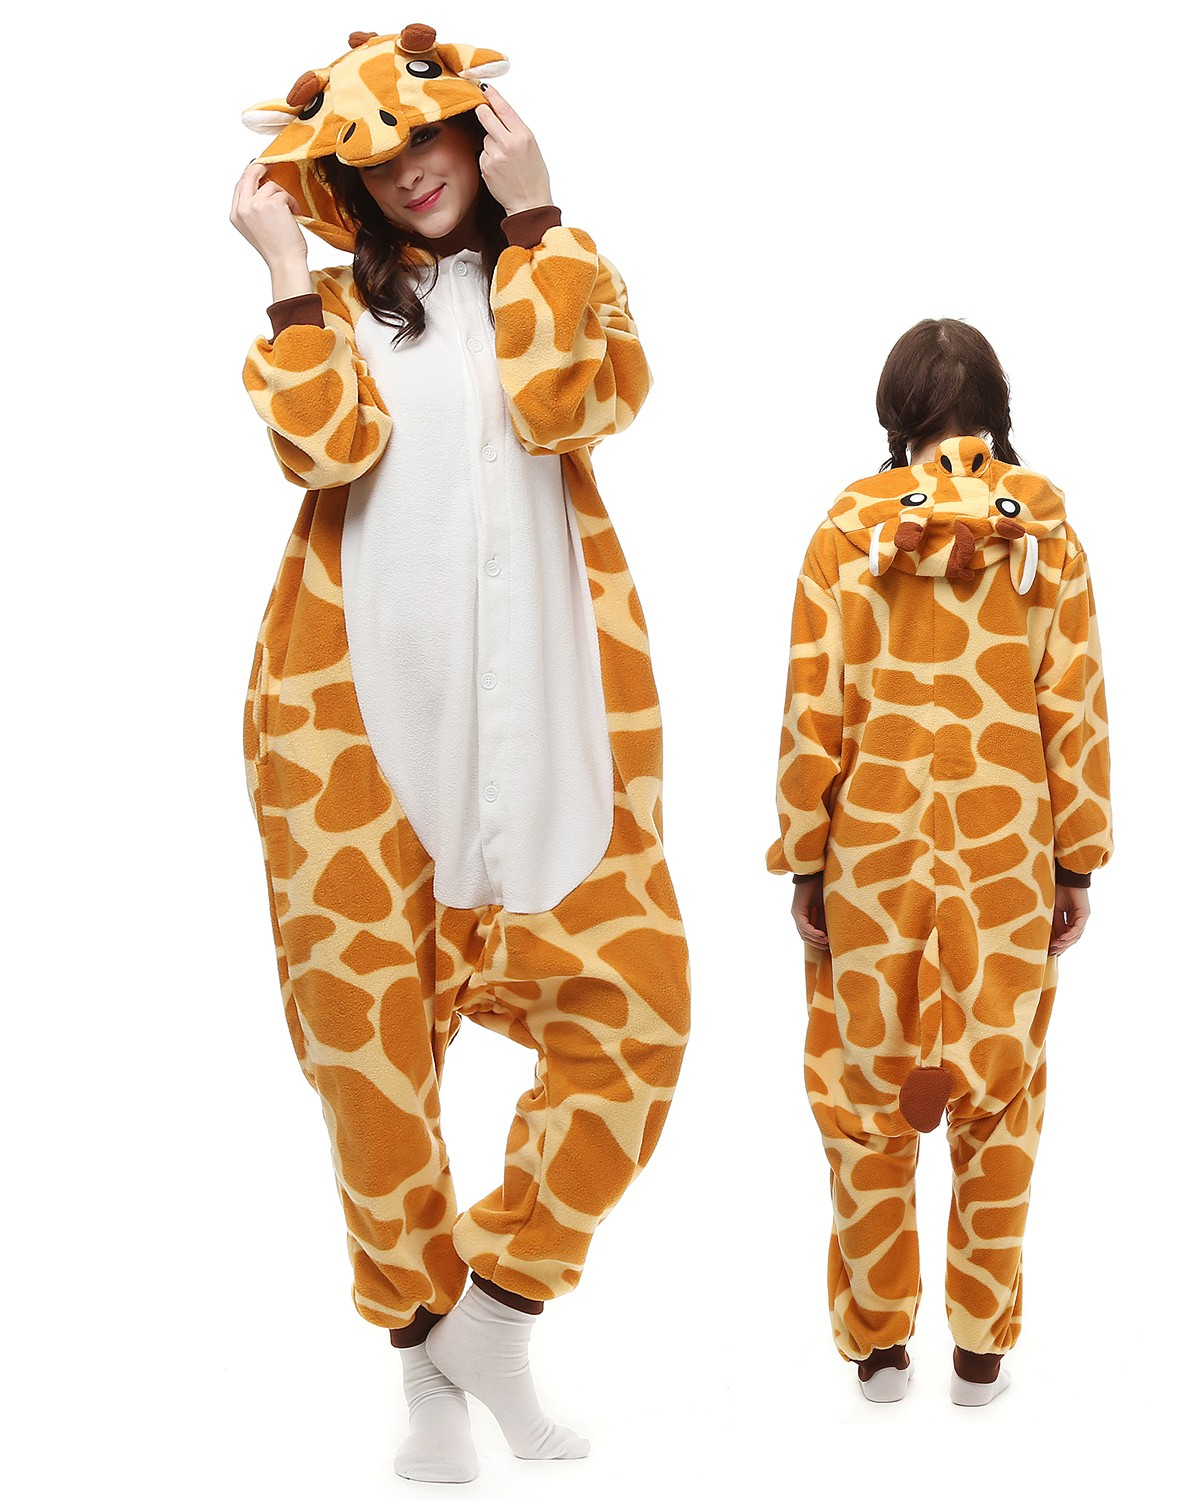 f963bf0ded34 Giraffe Kigurumi Onesie Pajamas Animal Costumes For Adult